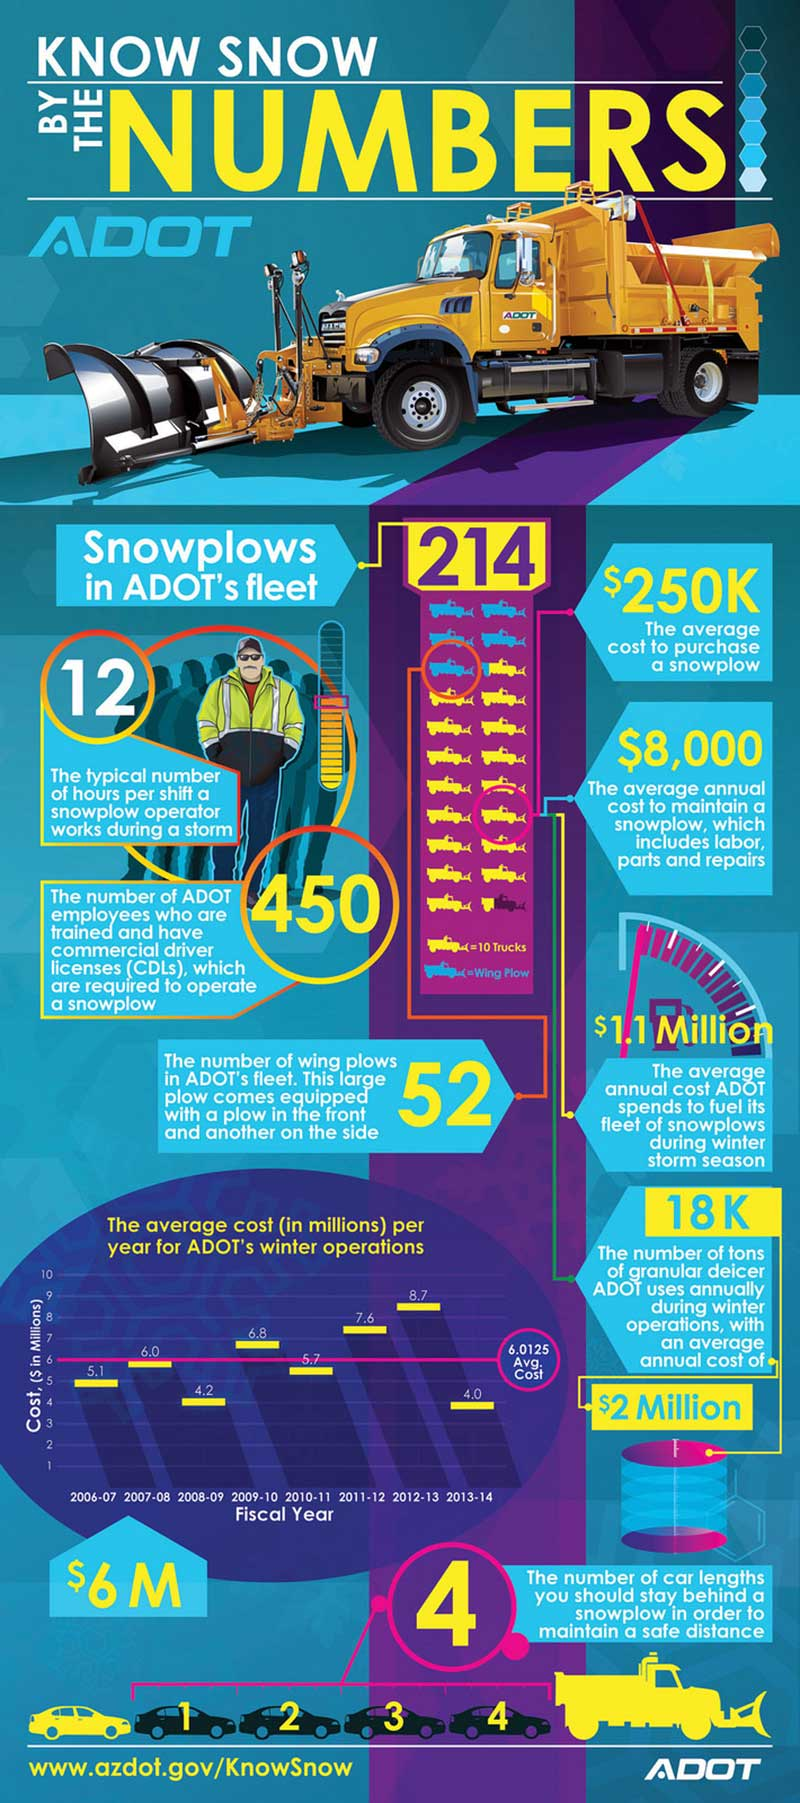 Know snow by the numbers Infographic